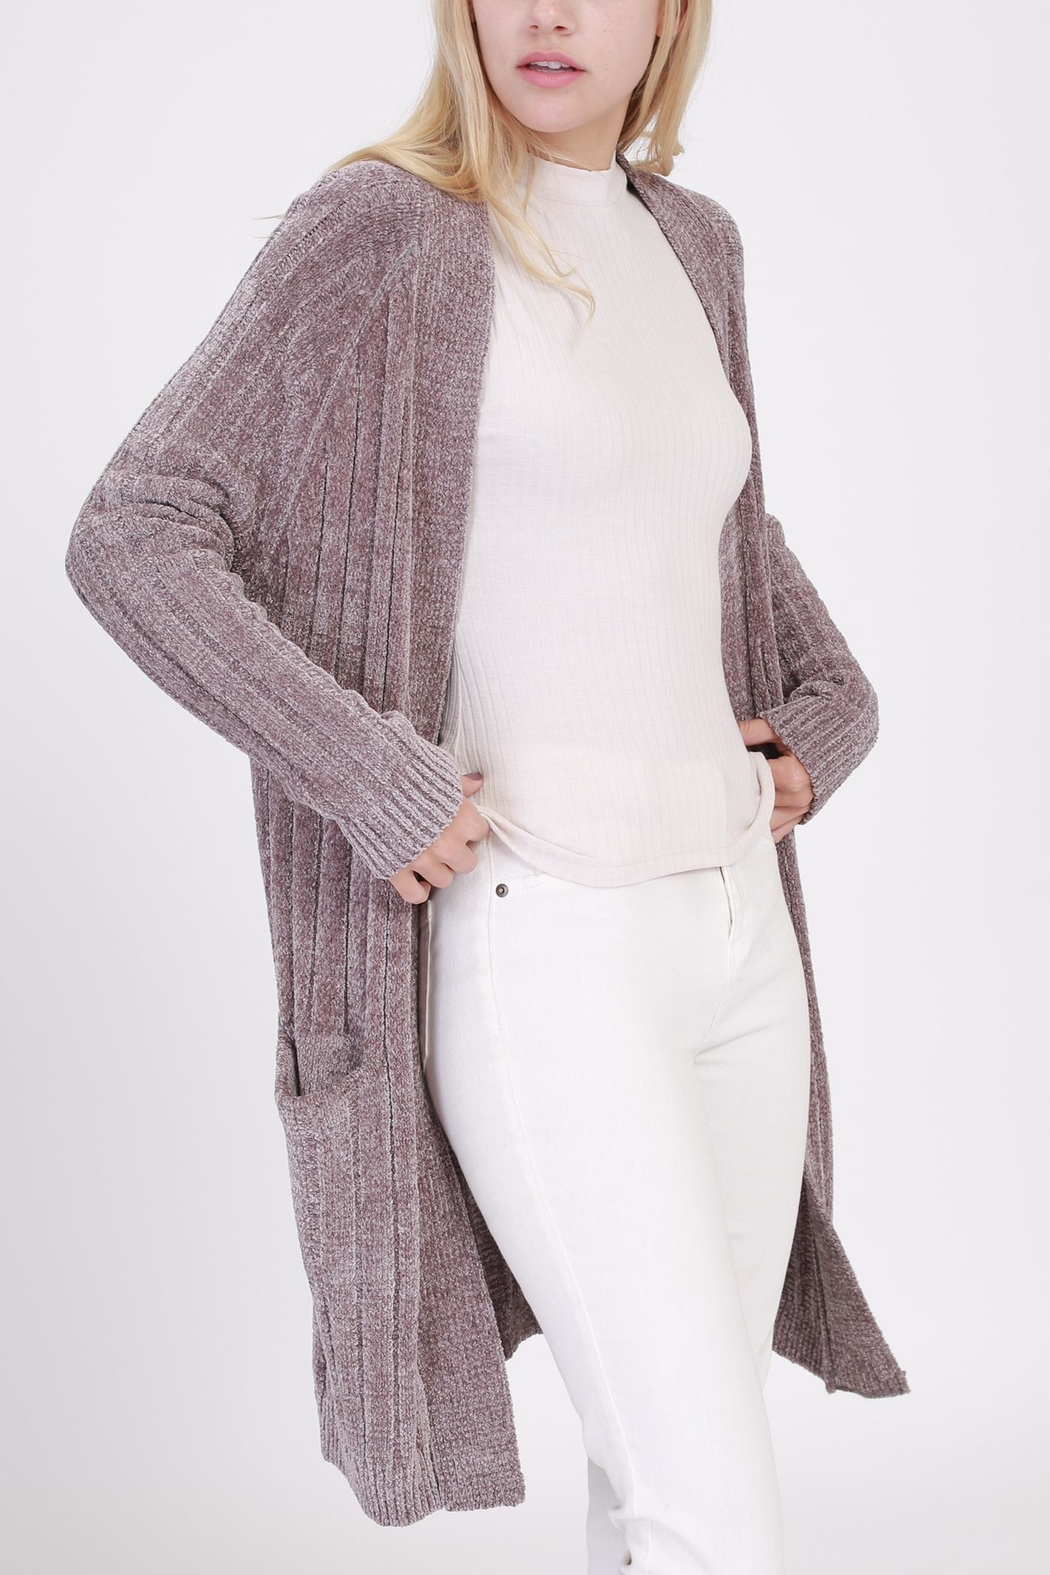 HYFVE Long Cardigan Sweater from New York City by Dor L'Dor ...